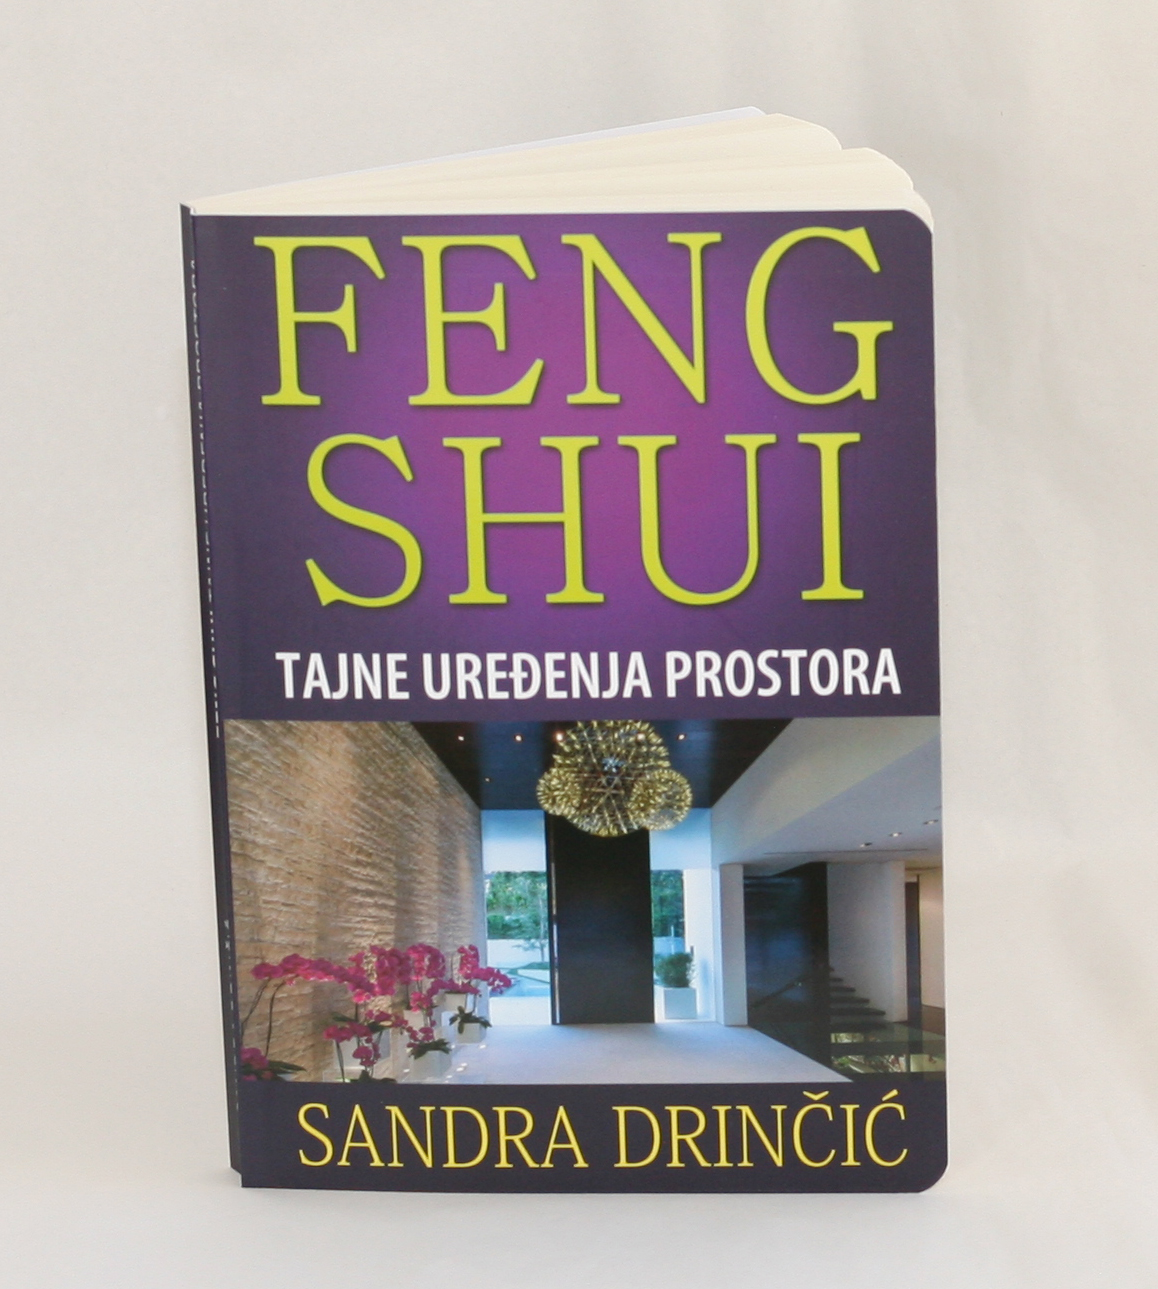 feng shui institut sandra drin i knjiga feng shui tajne uredjenja prostora feng shui. Black Bedroom Furniture Sets. Home Design Ideas